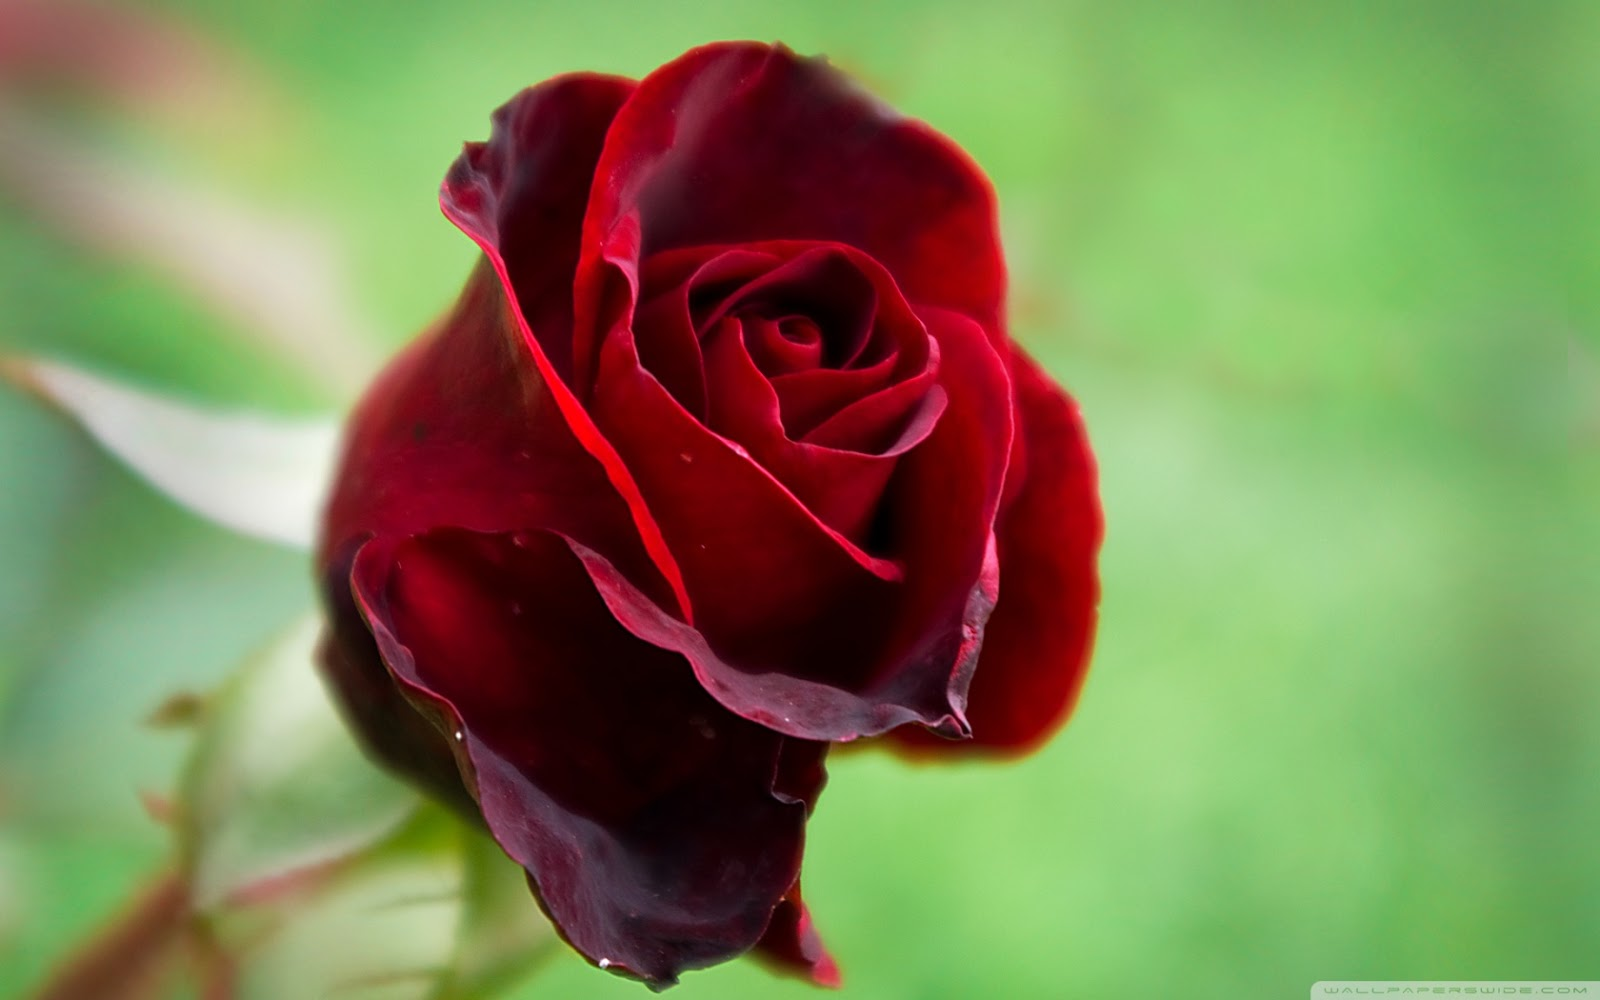 Single Flower Wallpapers: Beautiful Red Rose Flowers Wallpapers